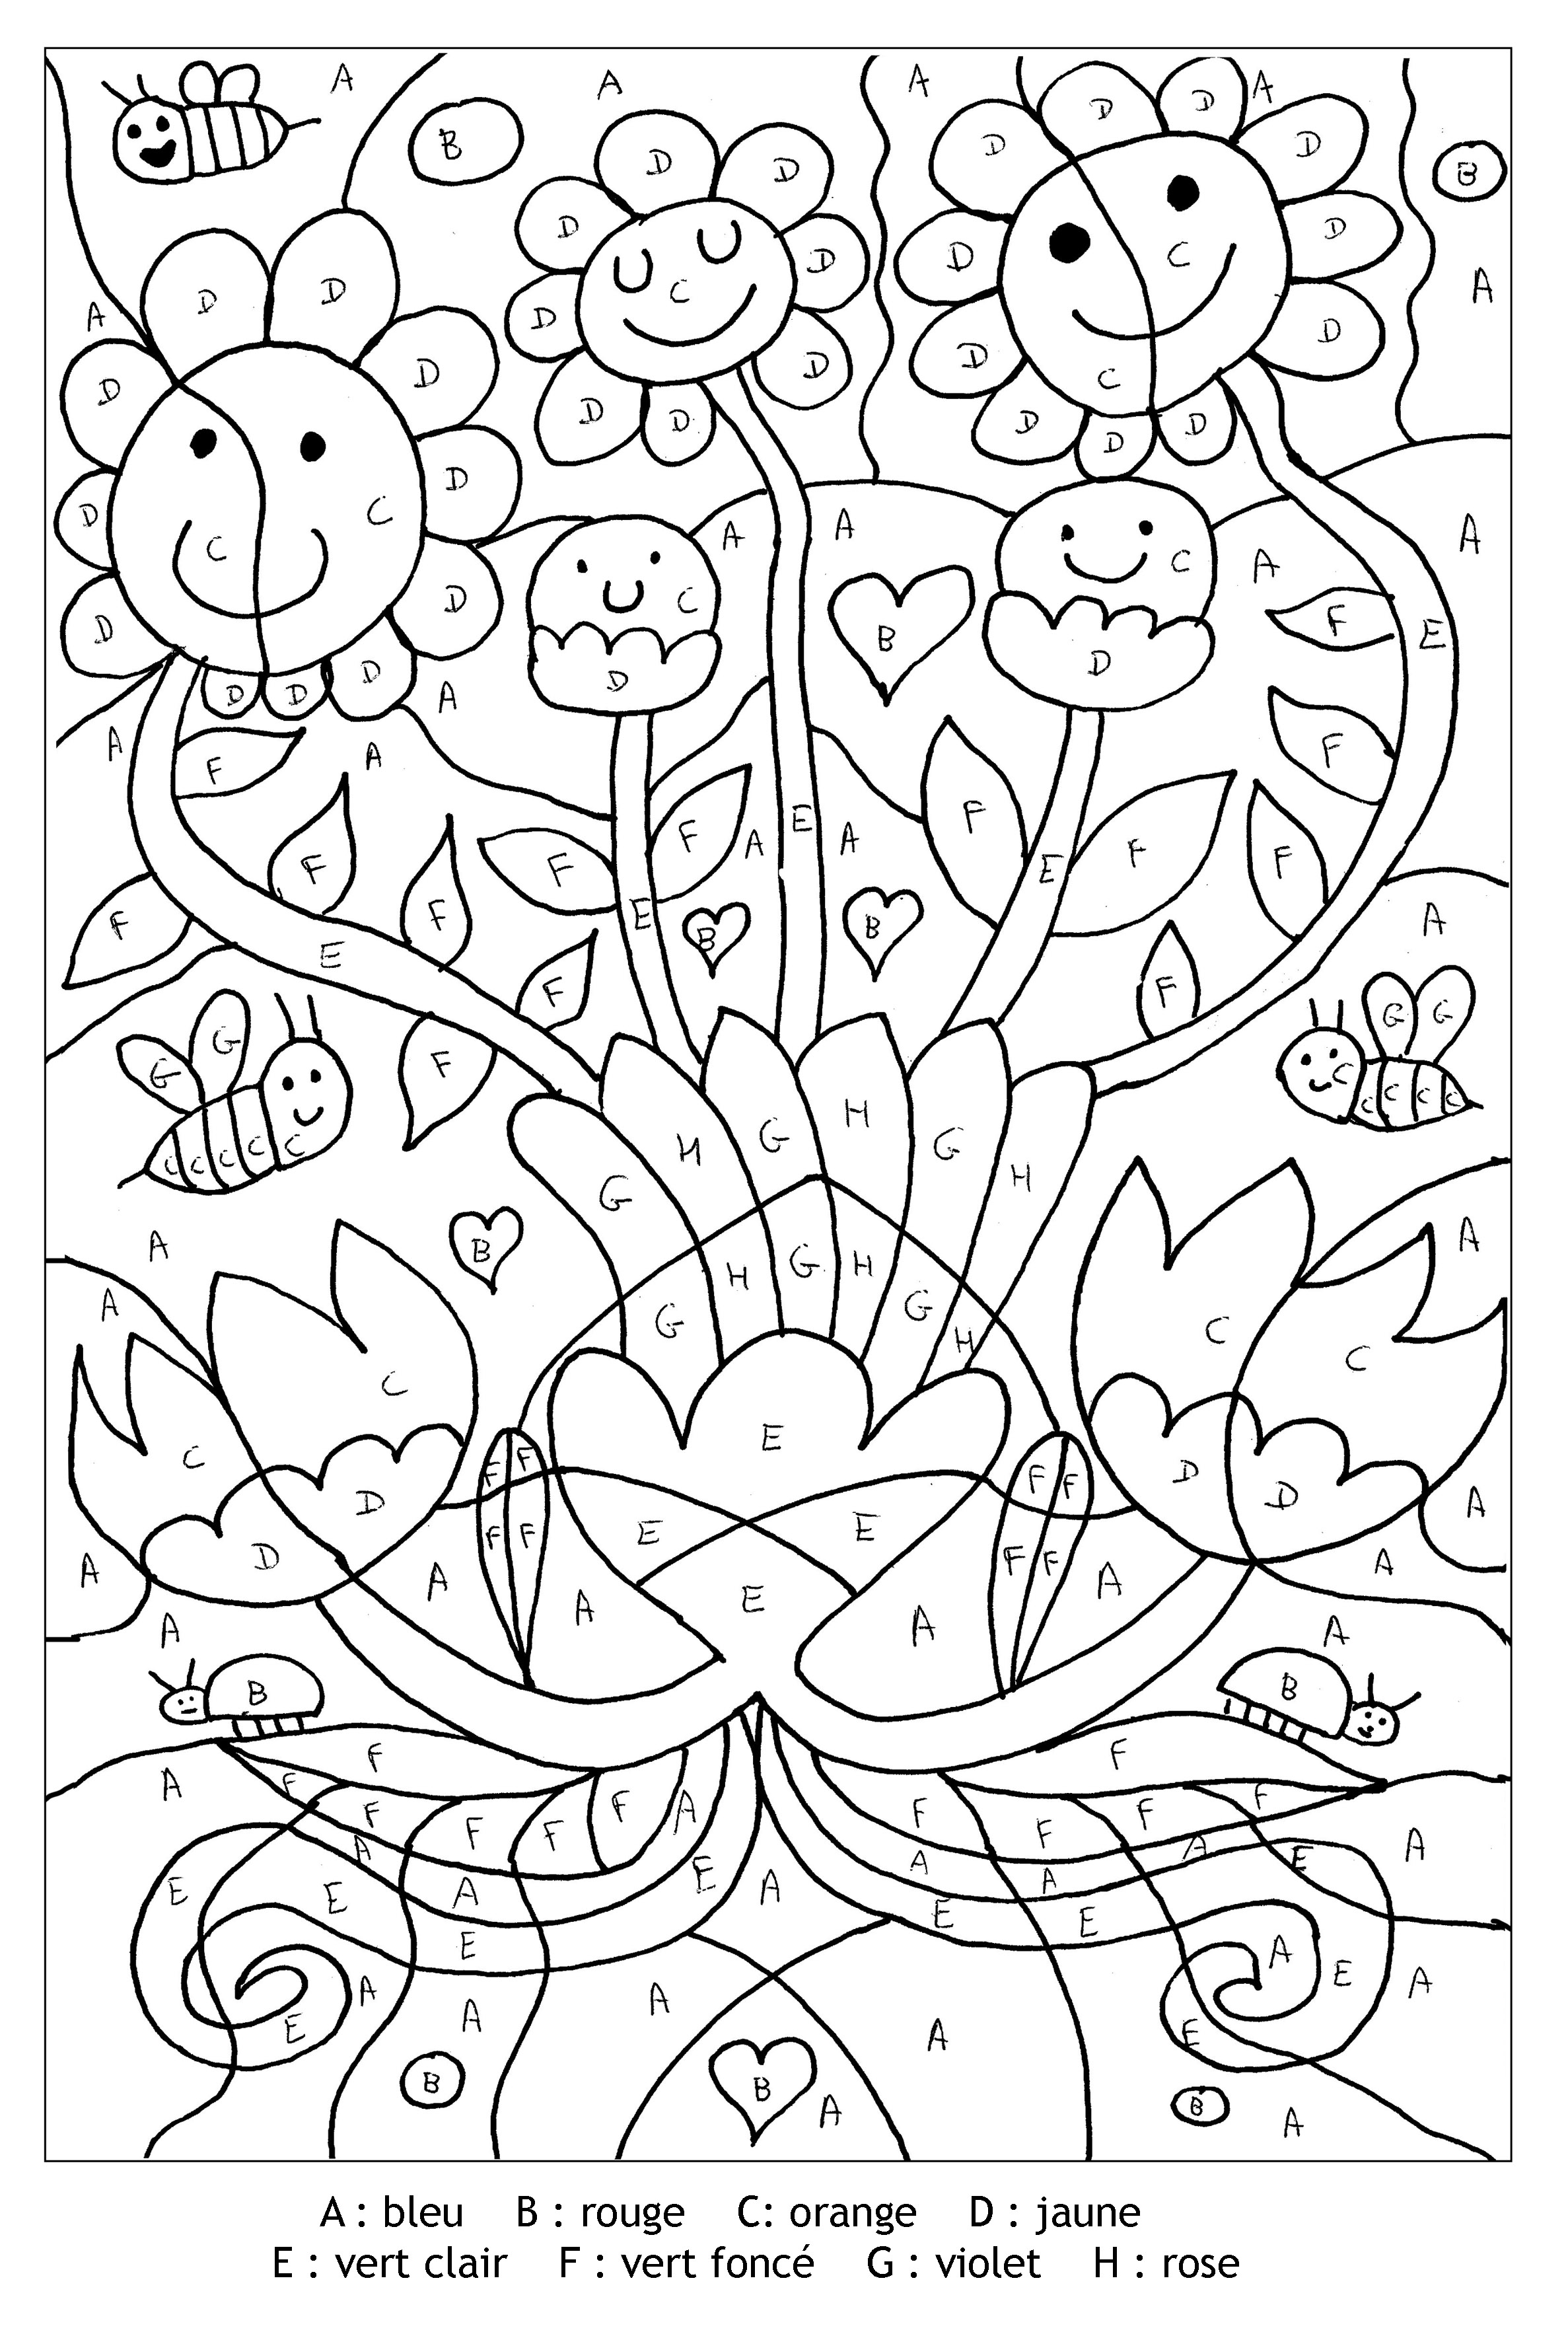 Free Printable Coloring Pages Of Cute Animals - Coloring Home | 3539x2374